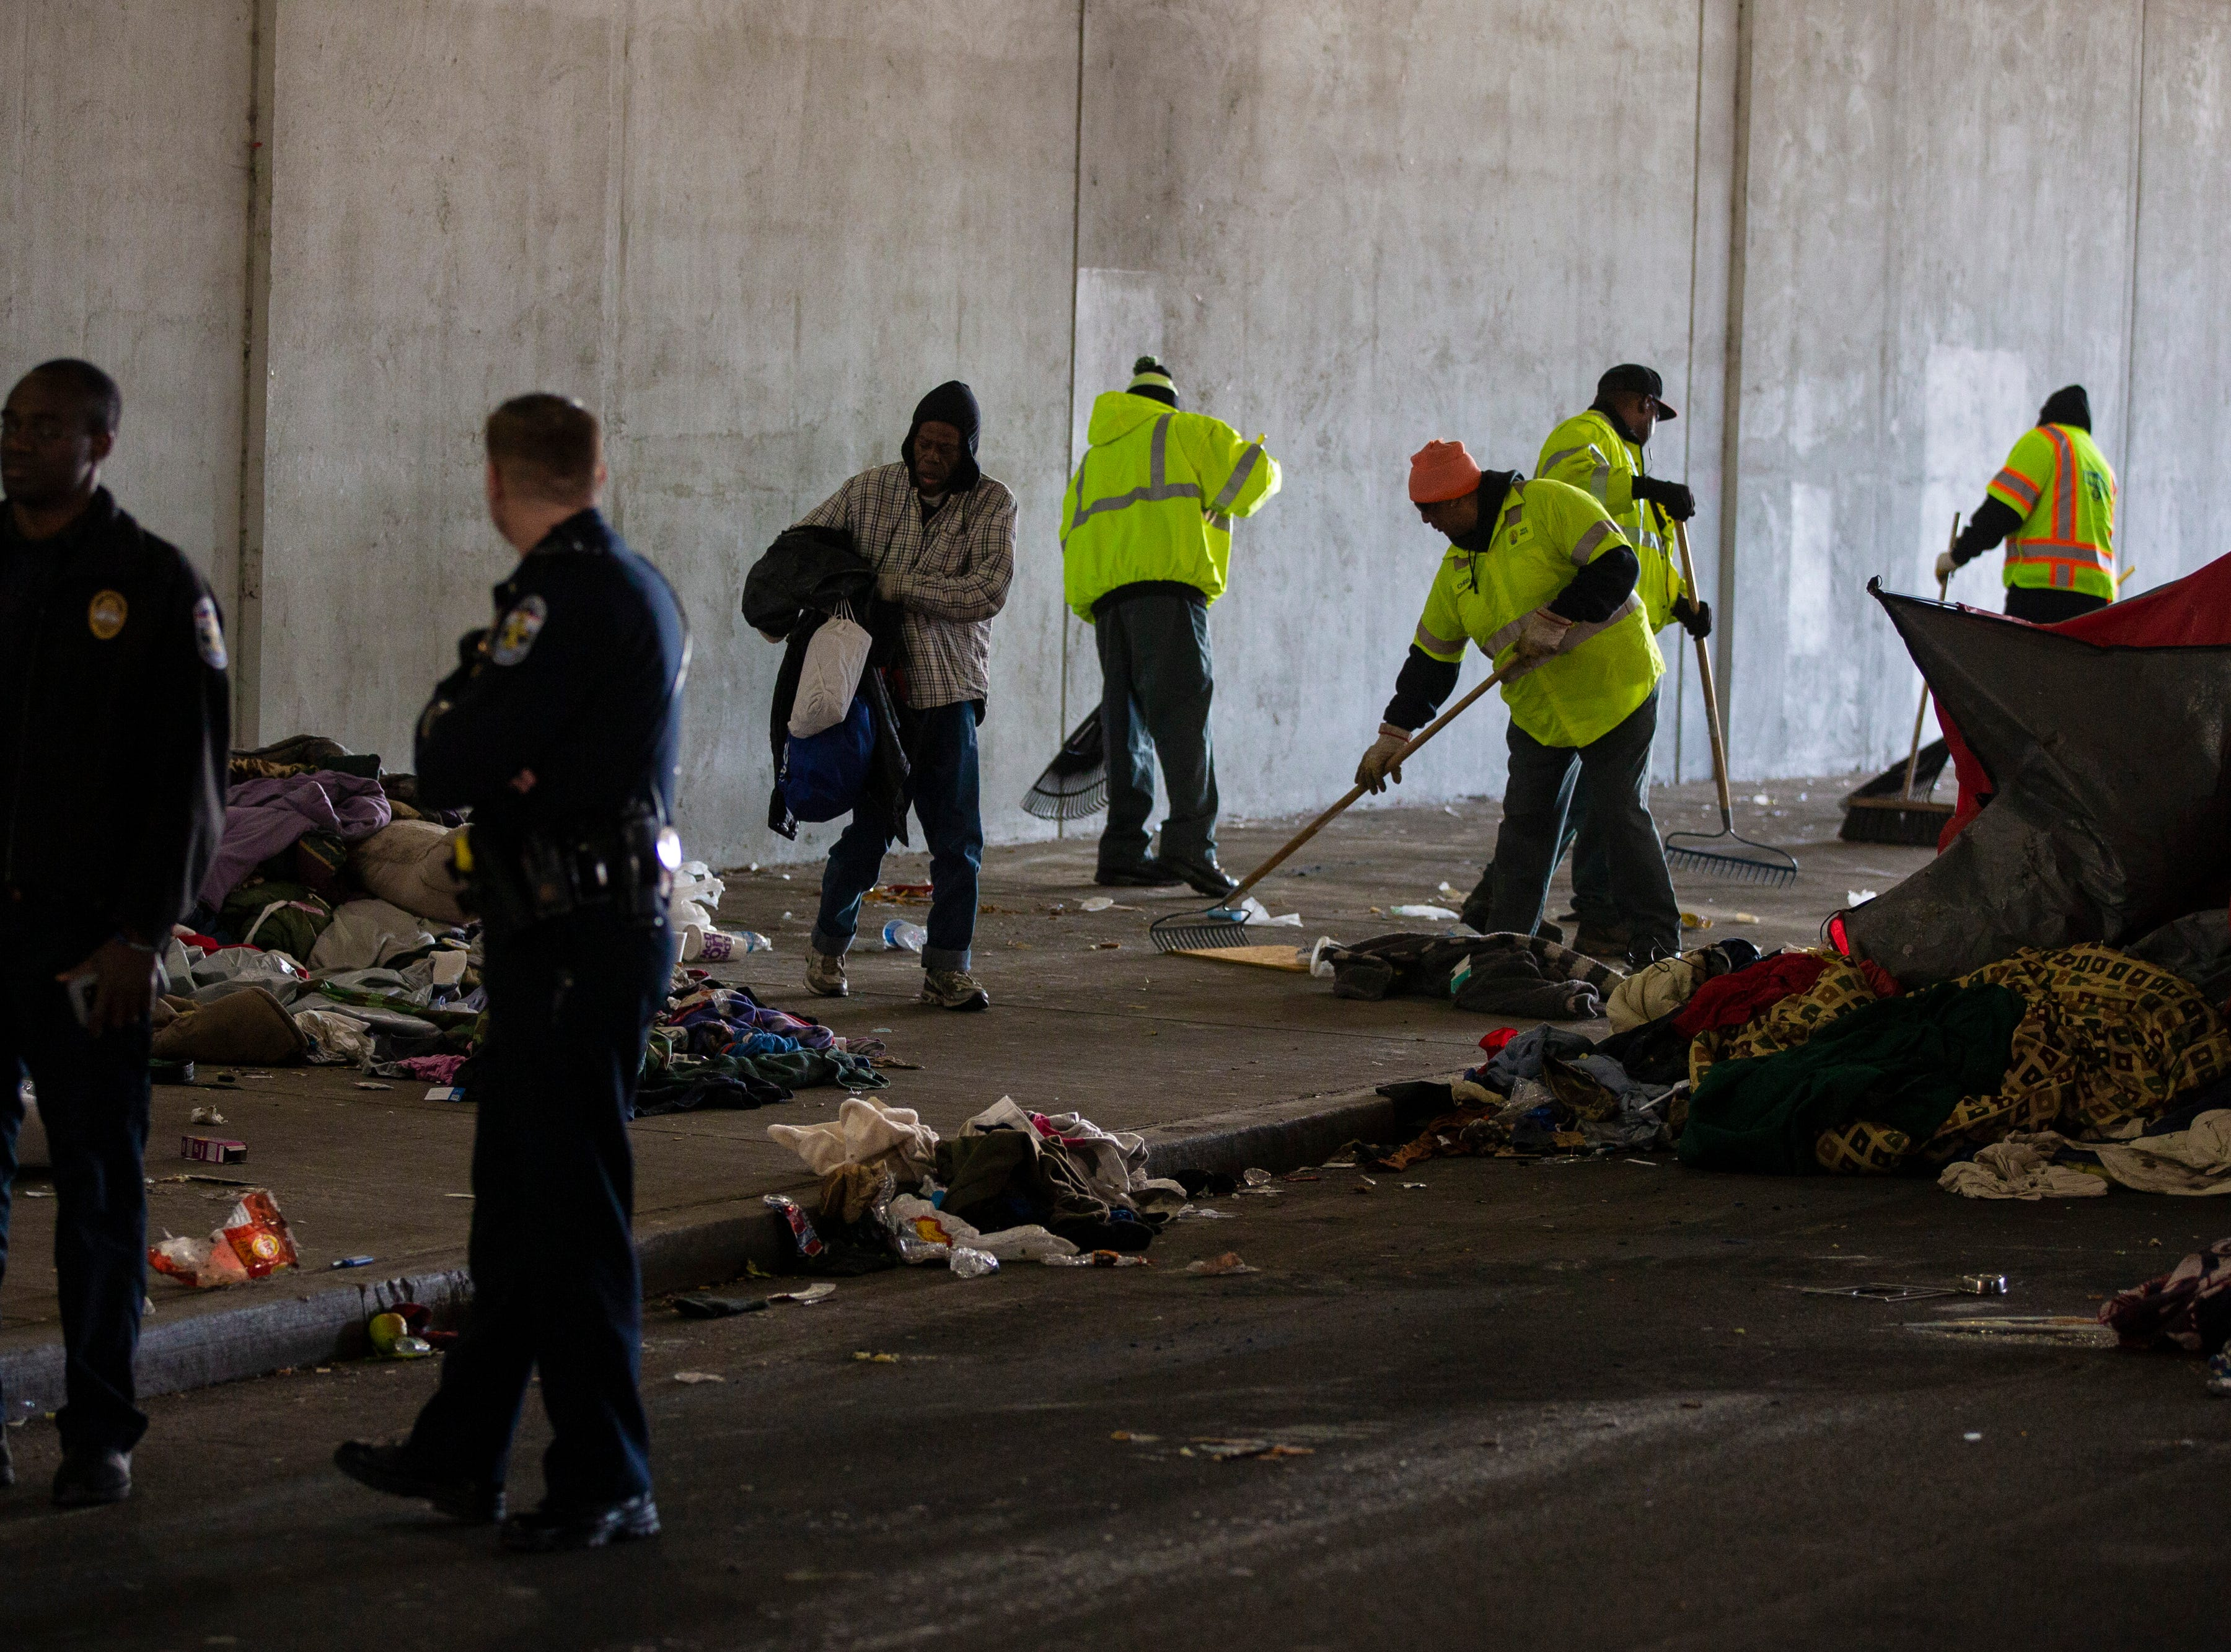 Police look on as Louisville city crews clean out the homeless camp at the intersection of Jackson and Jefferson streets Monday morning. April 1, 2019